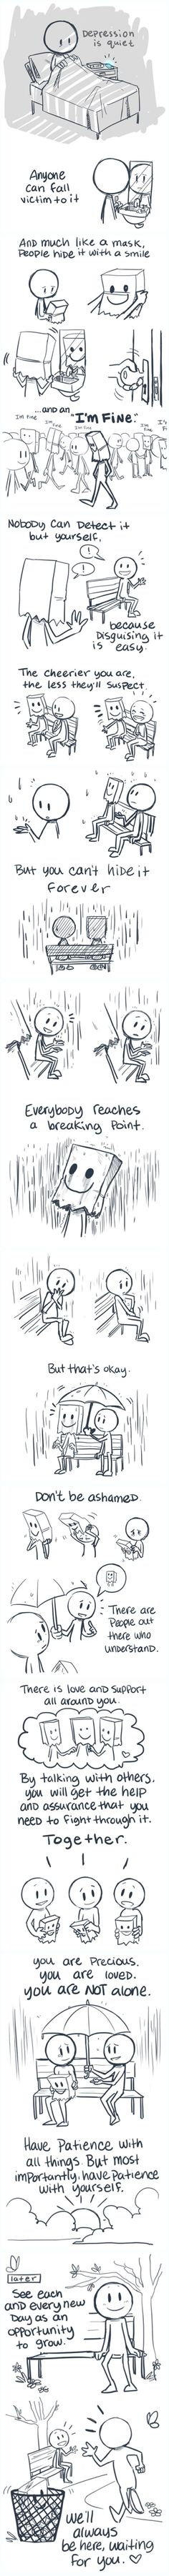 These comics perfectly capture what dealing with depression is like (By Colleen Butters)